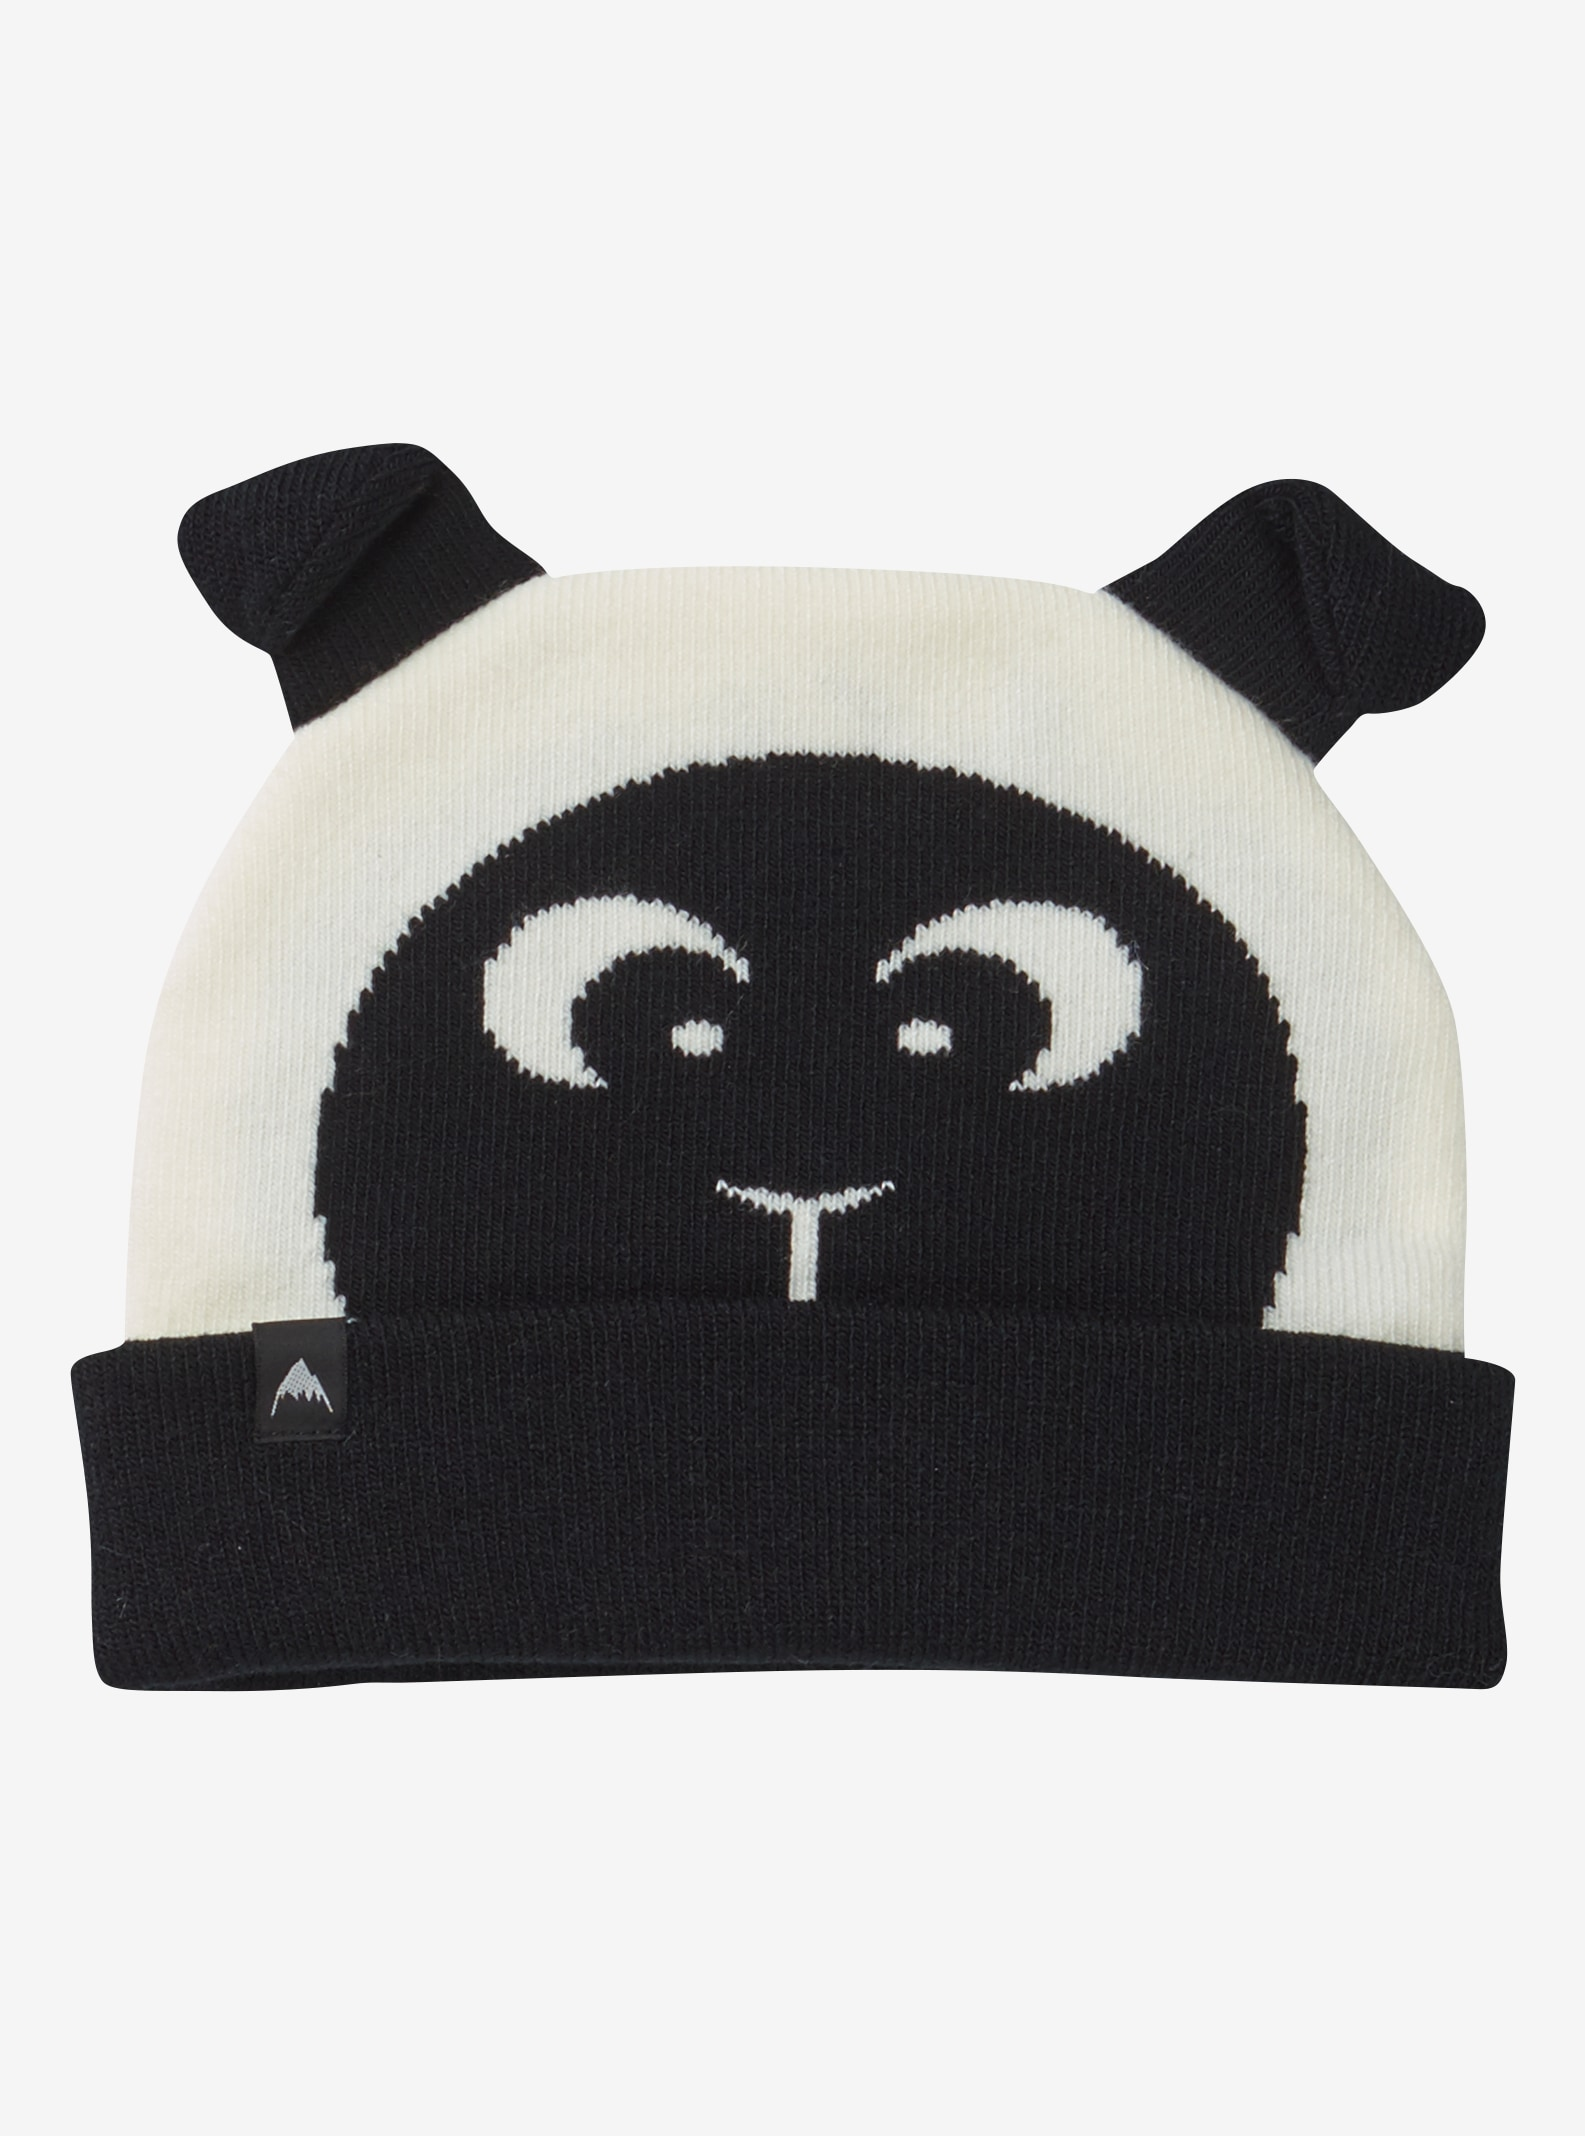 Boys' Burton Mini Beanie shown in Black Sheep